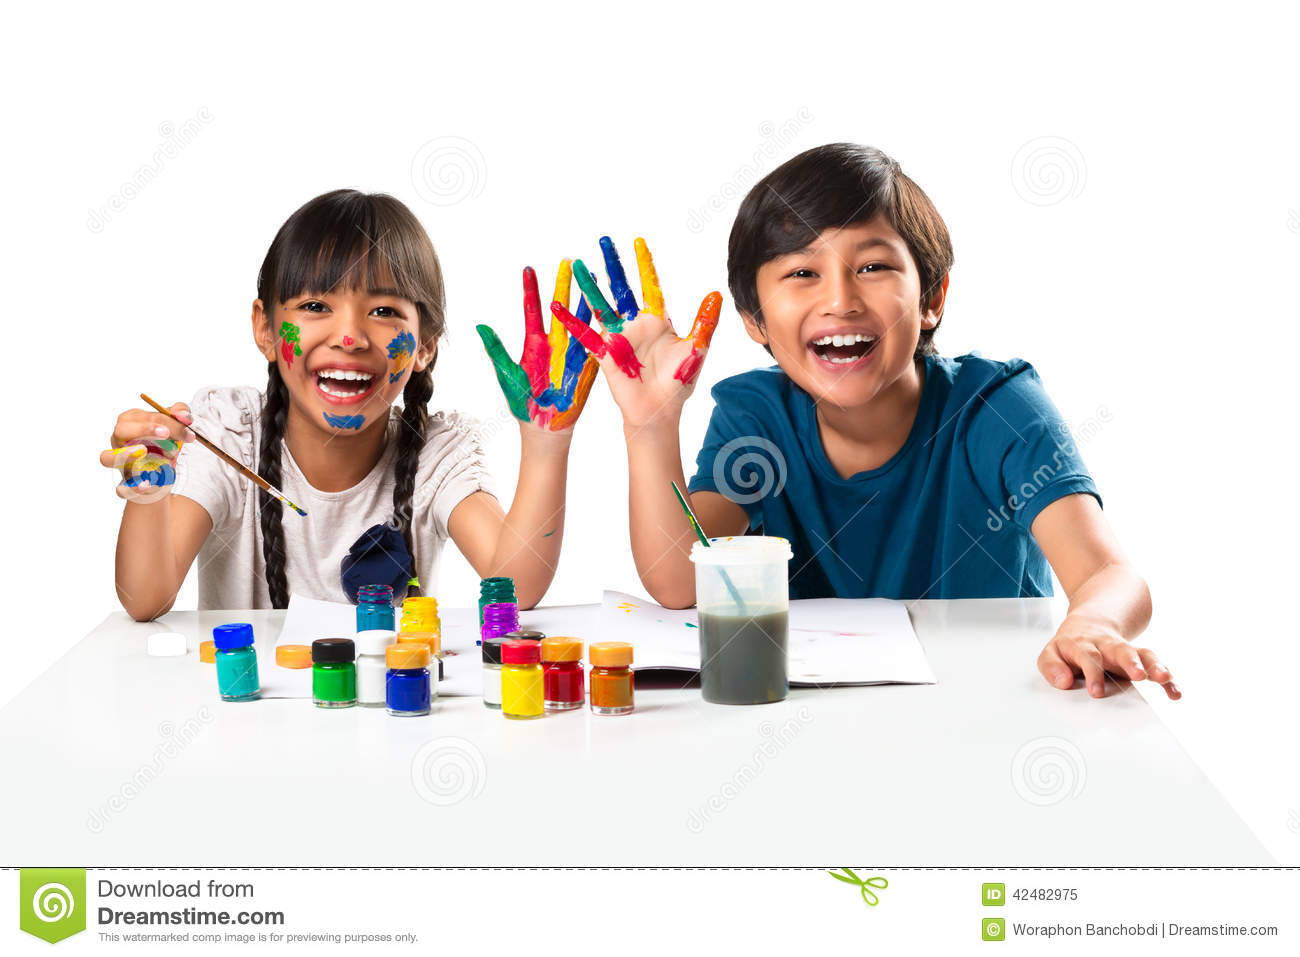 Download Water Color stock image. Image of happiness, learning - 42482975